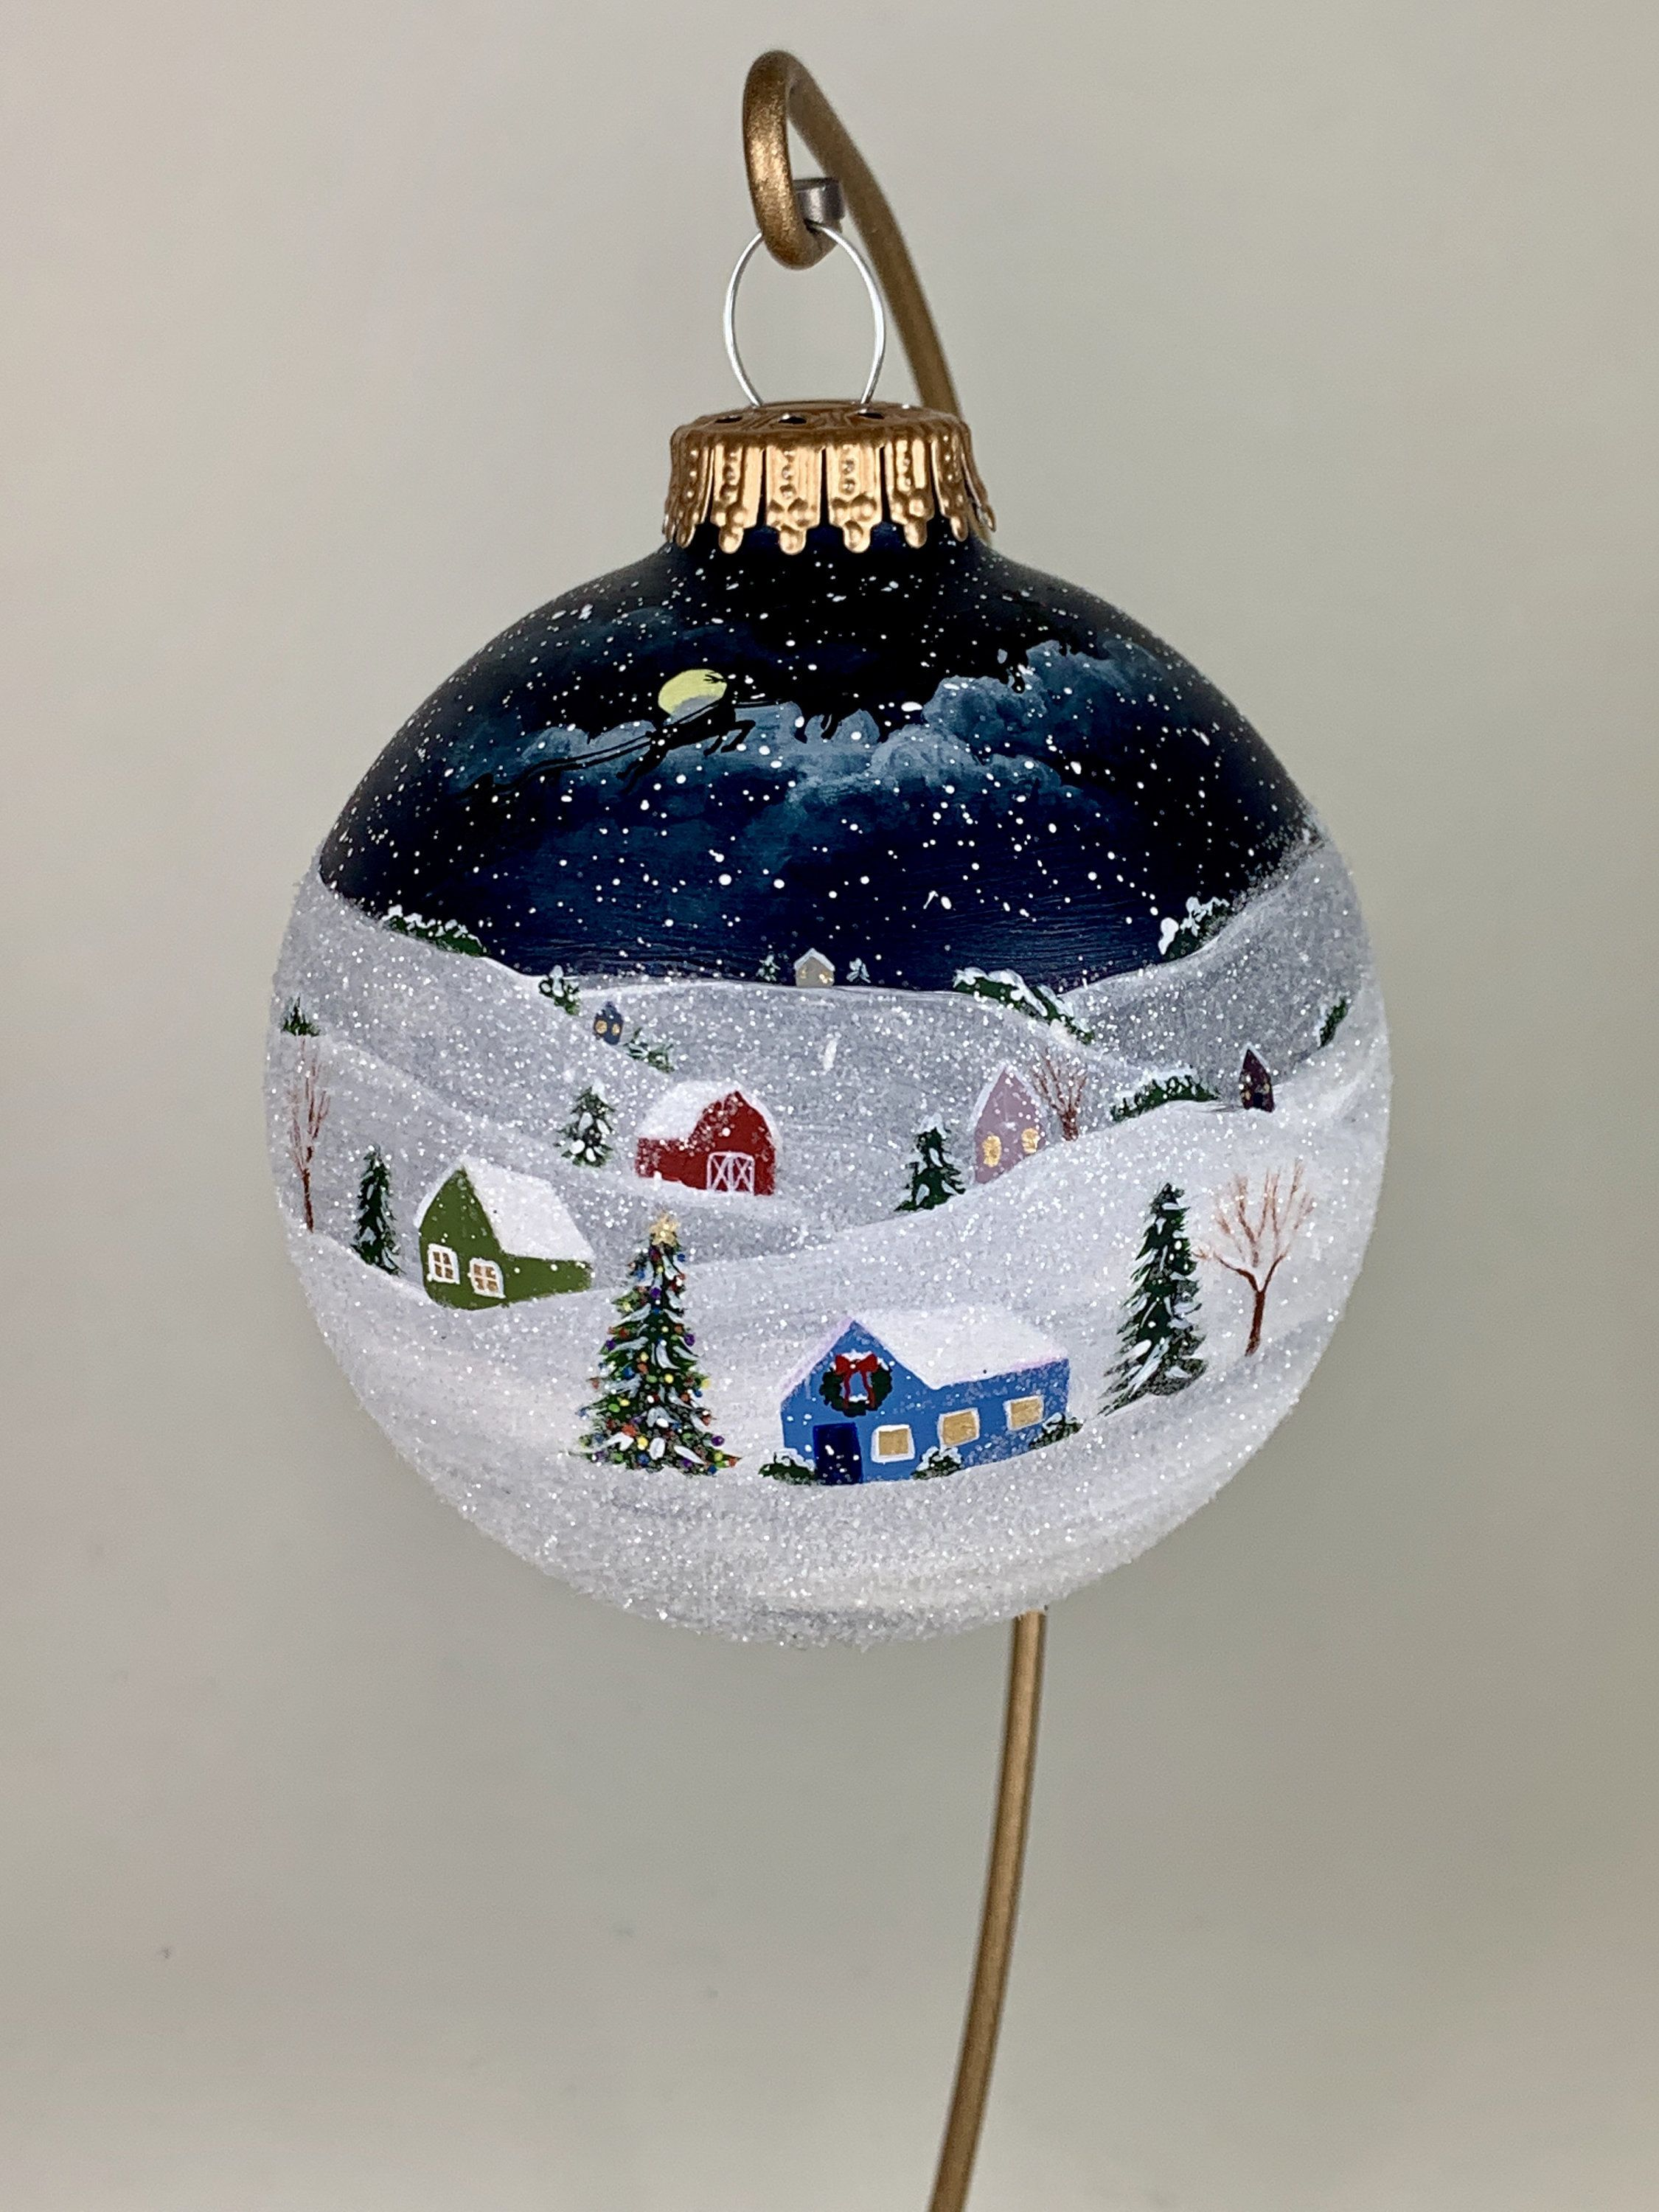 Christmas Village Ornament Hand Painted Ball Of Wintery Small Etsy Painted Christmas Ornaments Christmas Ornament Crafts Christmas Ornaments